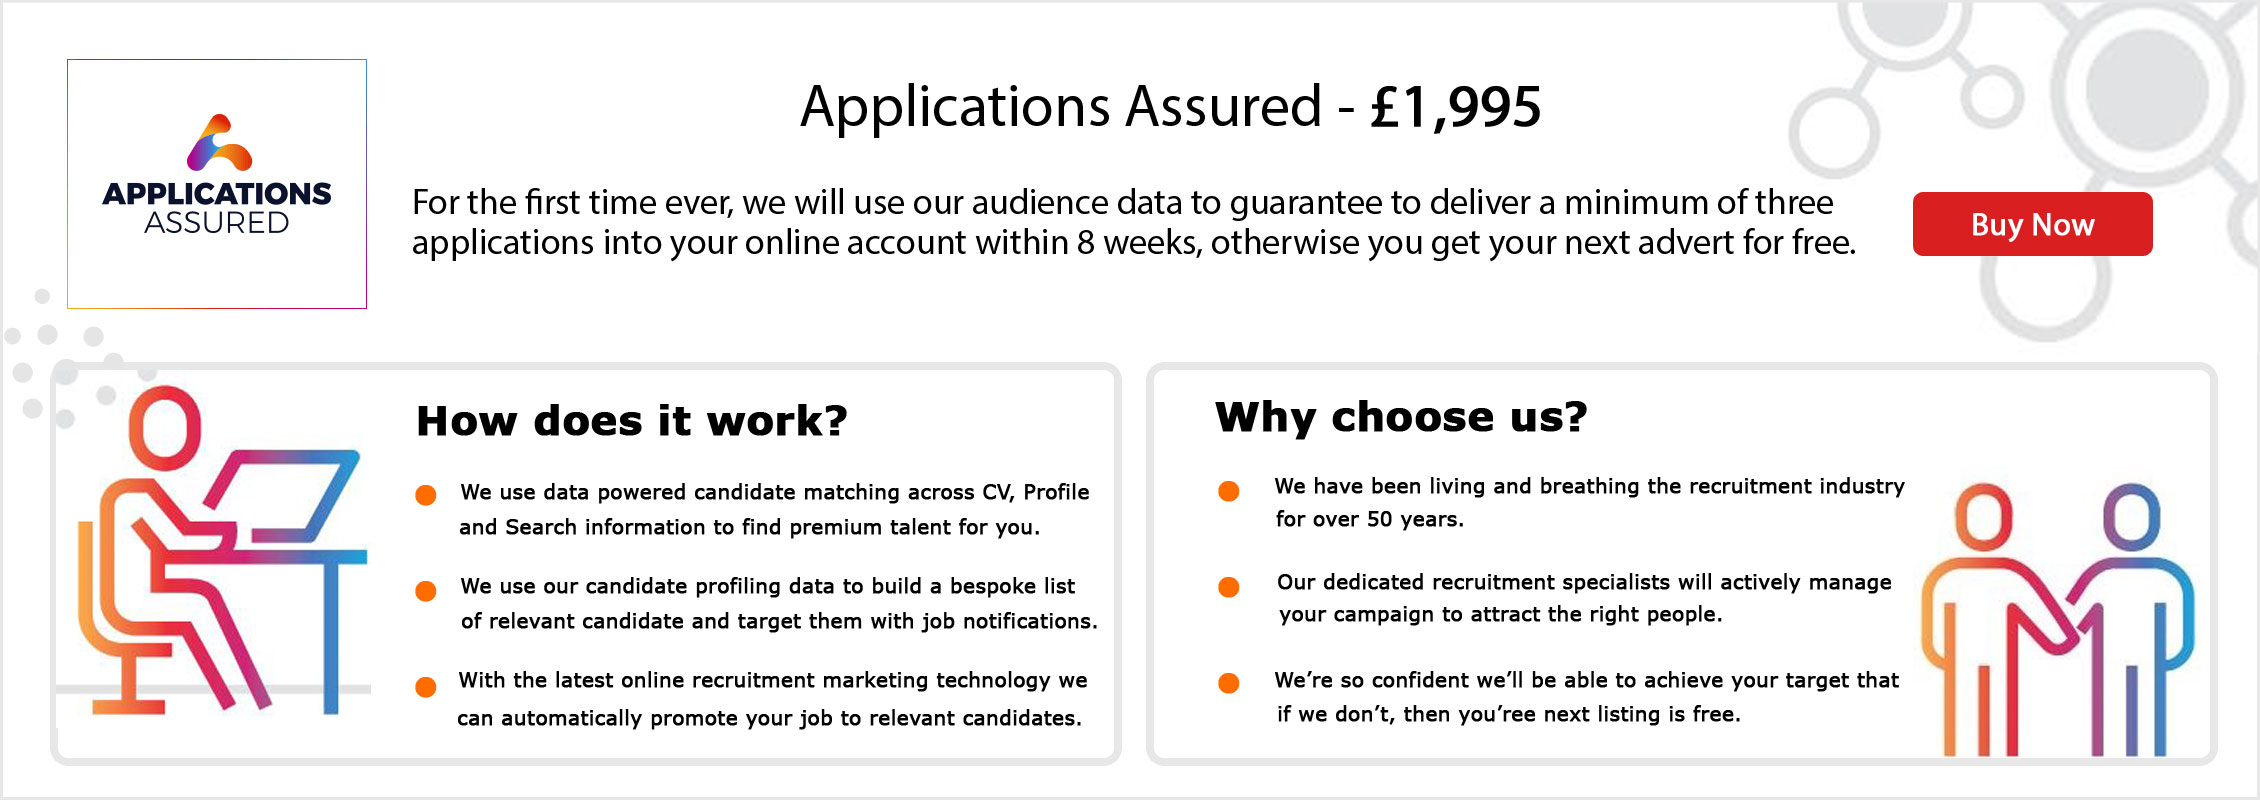 Applications Assured. £1,995. We use our audience data to guarantee to deliver a minimum of 3 applications into your online account within 8 weeks, otherwise you get your next advert for free. Buy Now. How does it work? We use data powered candidate matching across CV, Profile and Search information to find premium talent for you. We use our candidate profiling data to build a bespoke list of relevant candidates and target them with job notifications. With the latest online recruitment marketing technology we can automatically promote your job. Why choose us? We have been living and breathing the recruitment industry for over 50 years. Our dedicated recruitment specialists will actively manage your campaign to attract the right people.